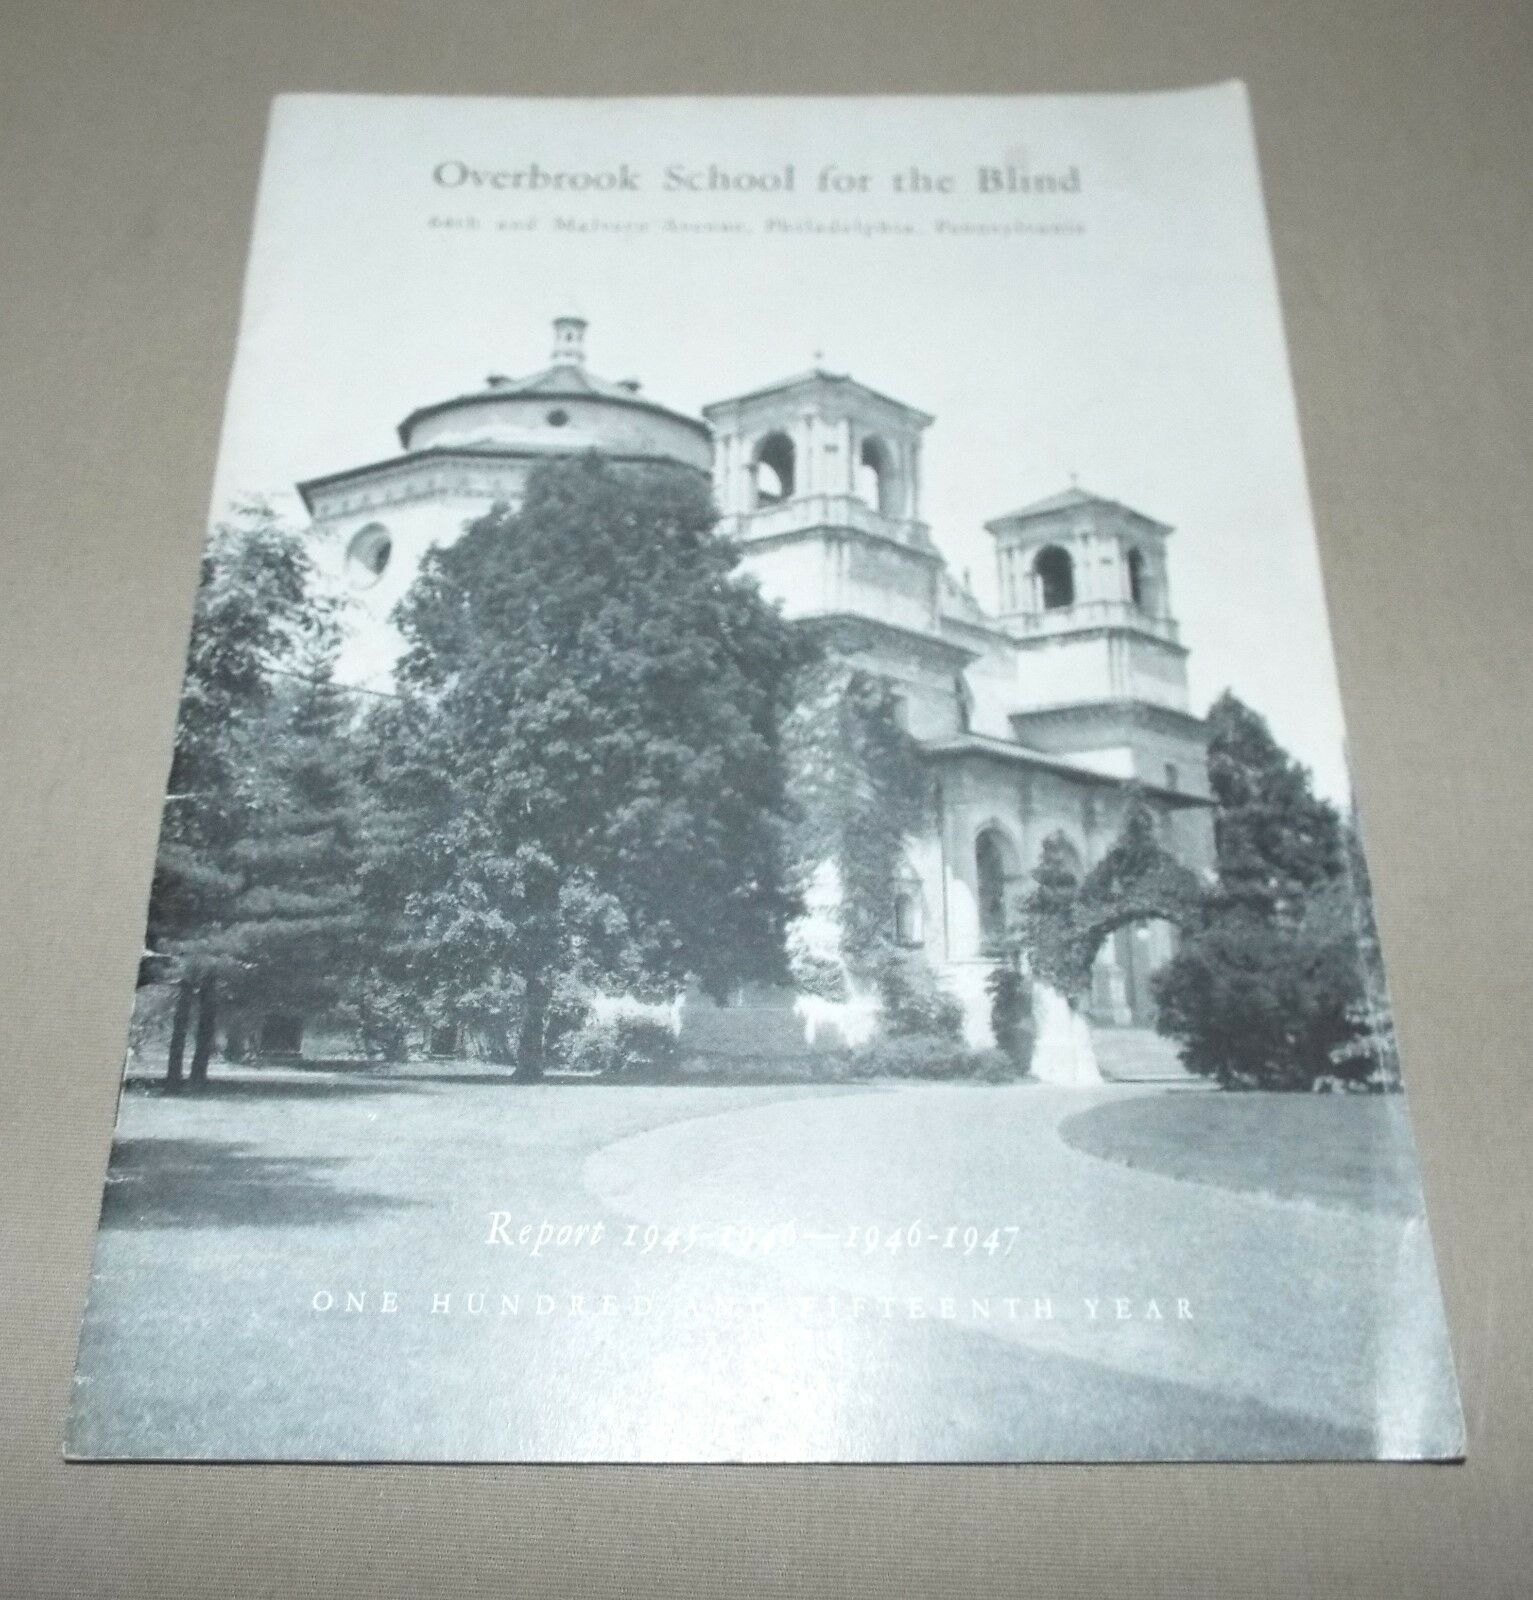 1947 REPORT OVERBROOK SCHOOL FOR THE BLIND PHILADELPHIA, PA